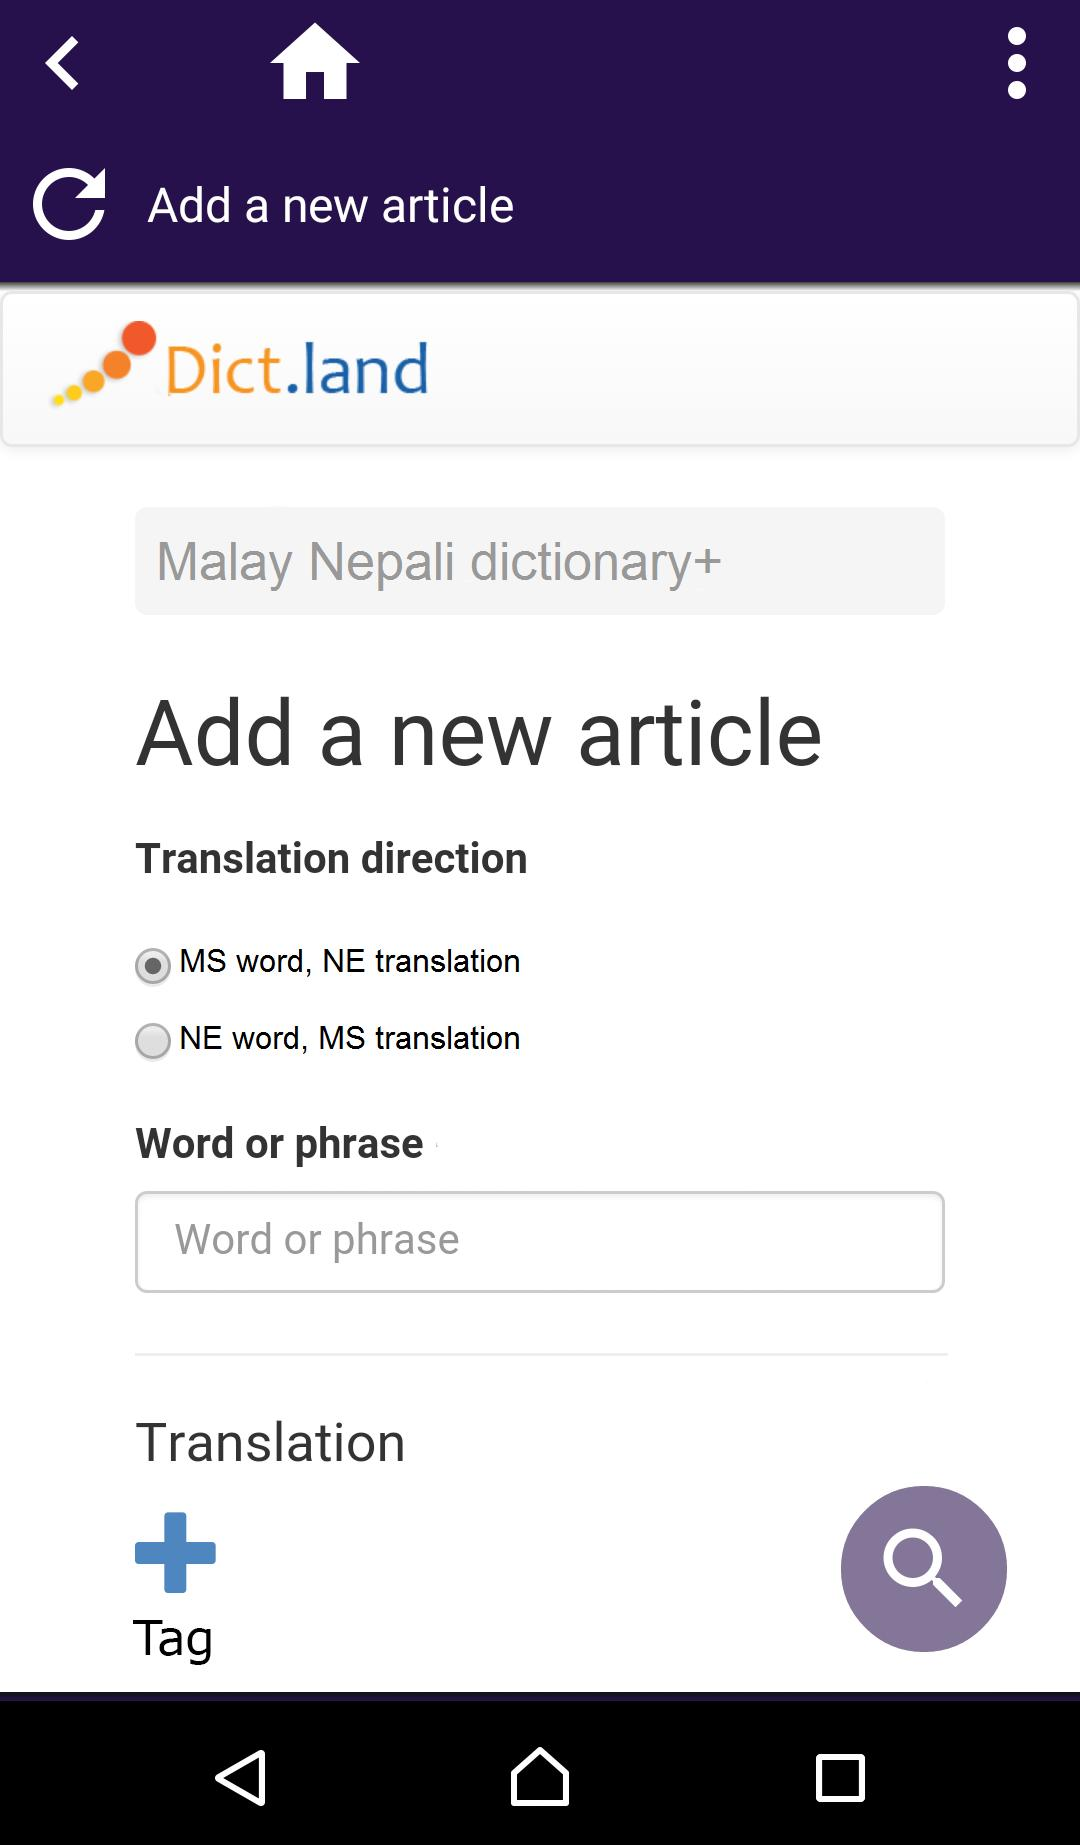 Malay Nepali dictionary for Android - APK Download